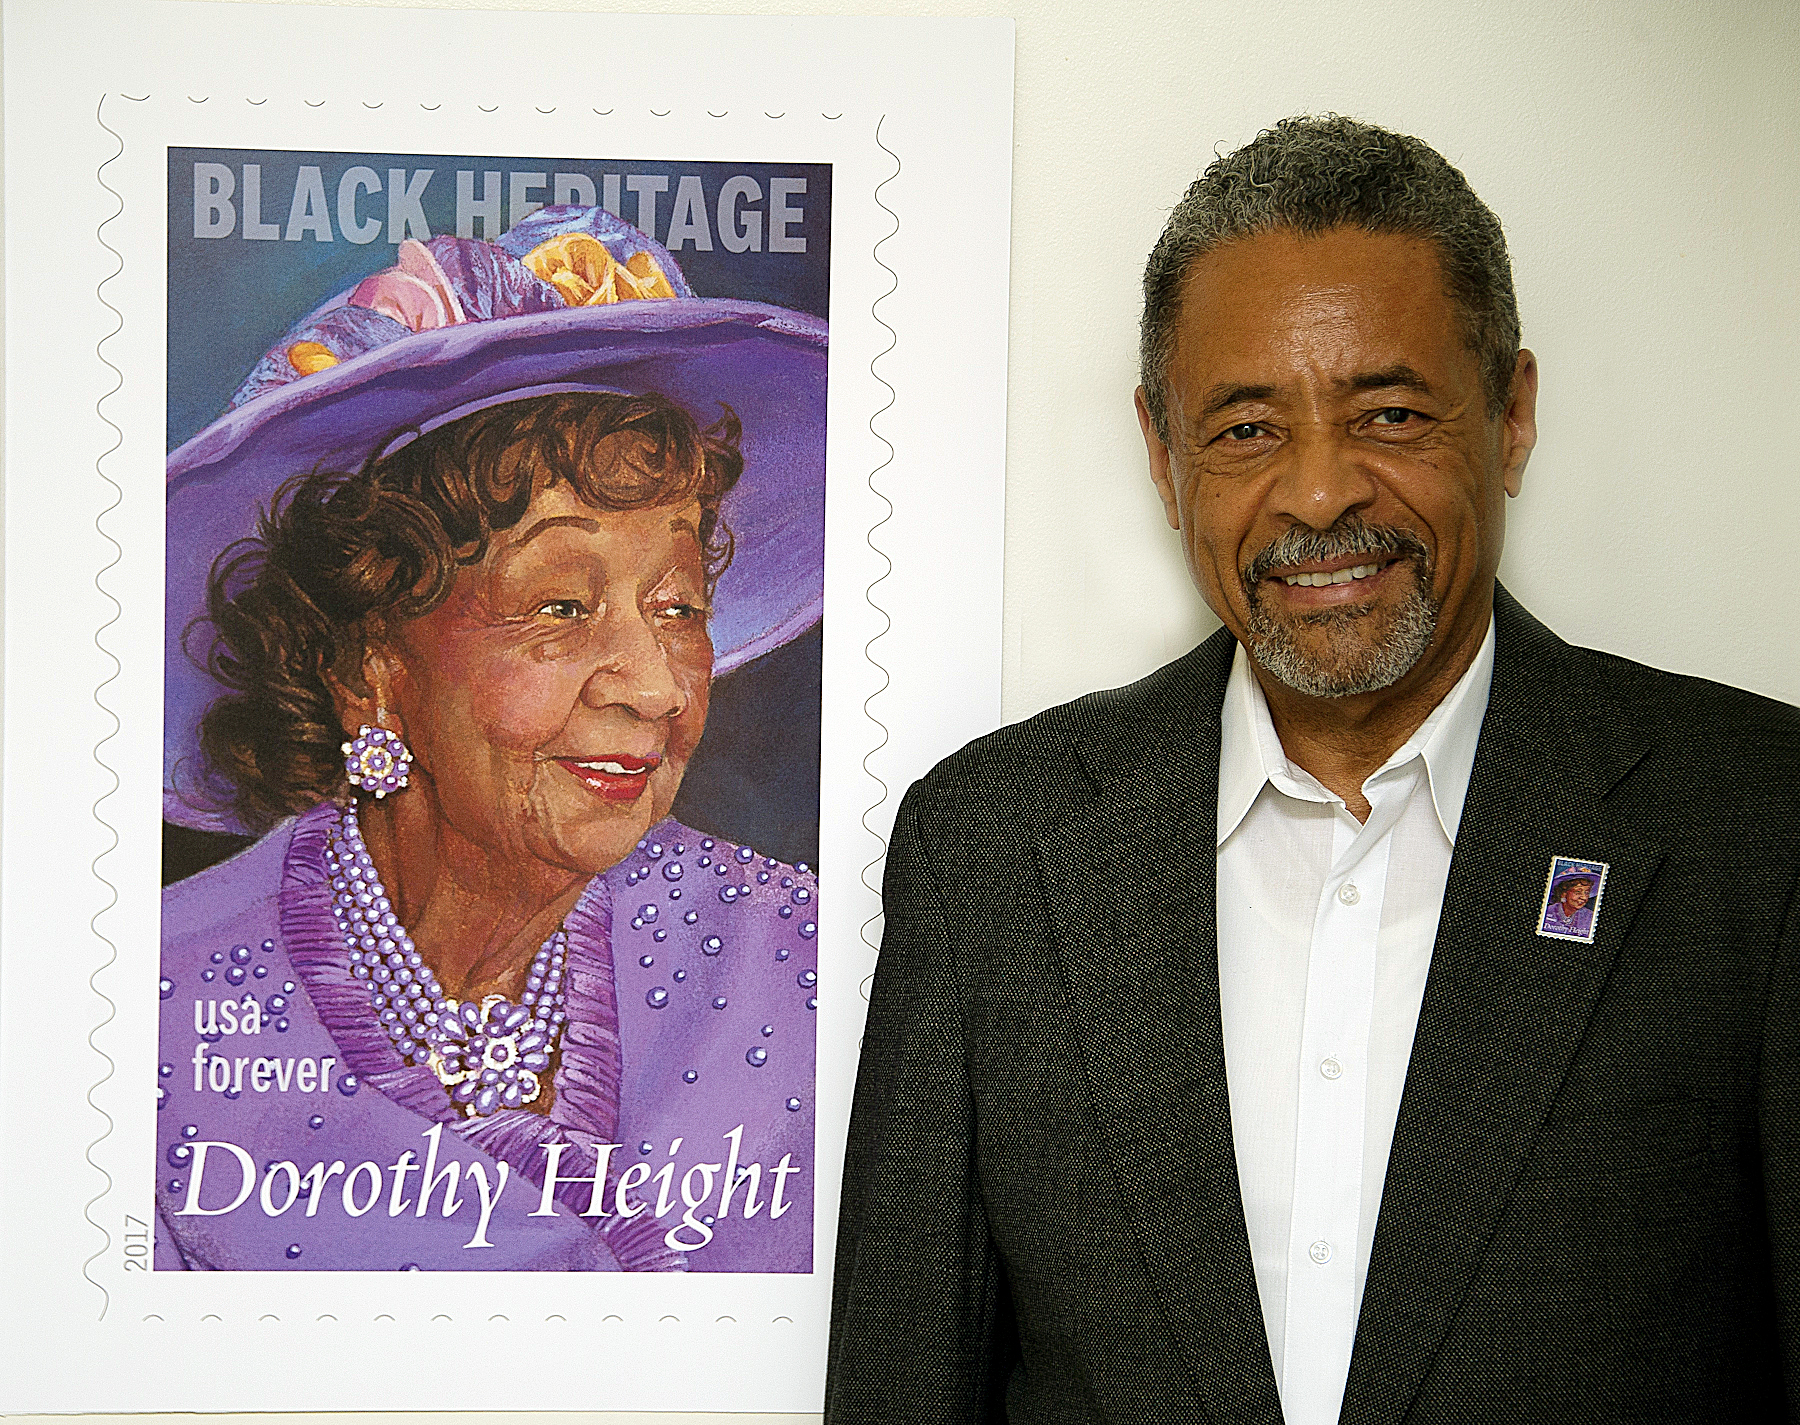 Photo of Lateef Mangum Photo Selected for Dorothy Height Stamp